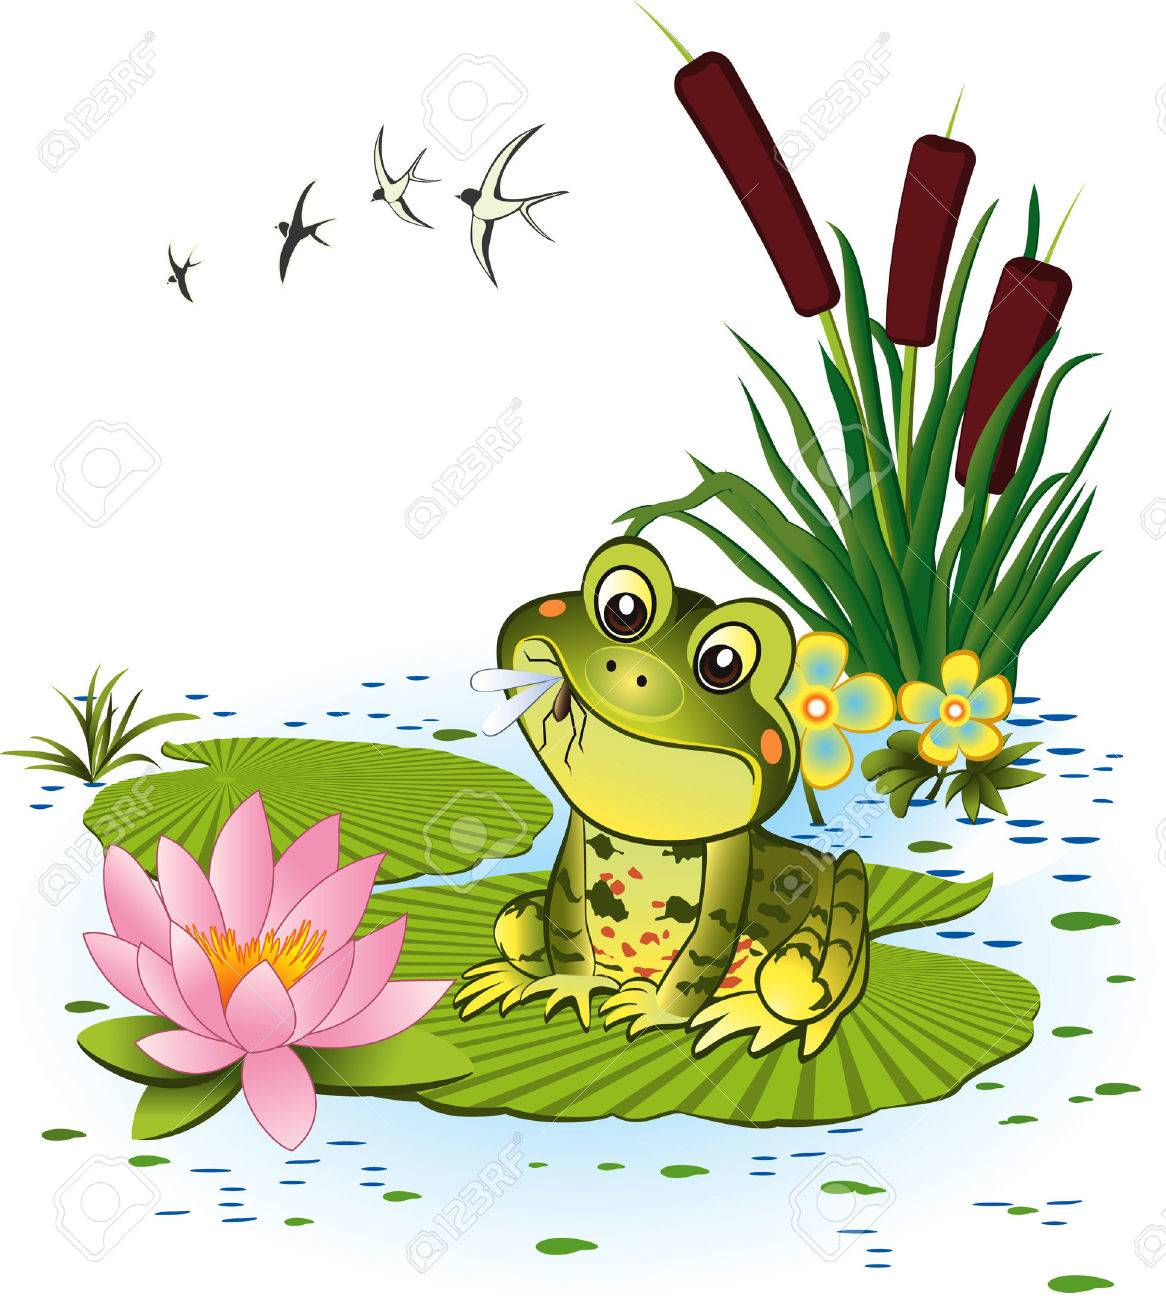 4 943 swamp stock illustrations cliparts and royalty free swamp vectors rh 123rf com swamp scene clipart swamp monster clipart